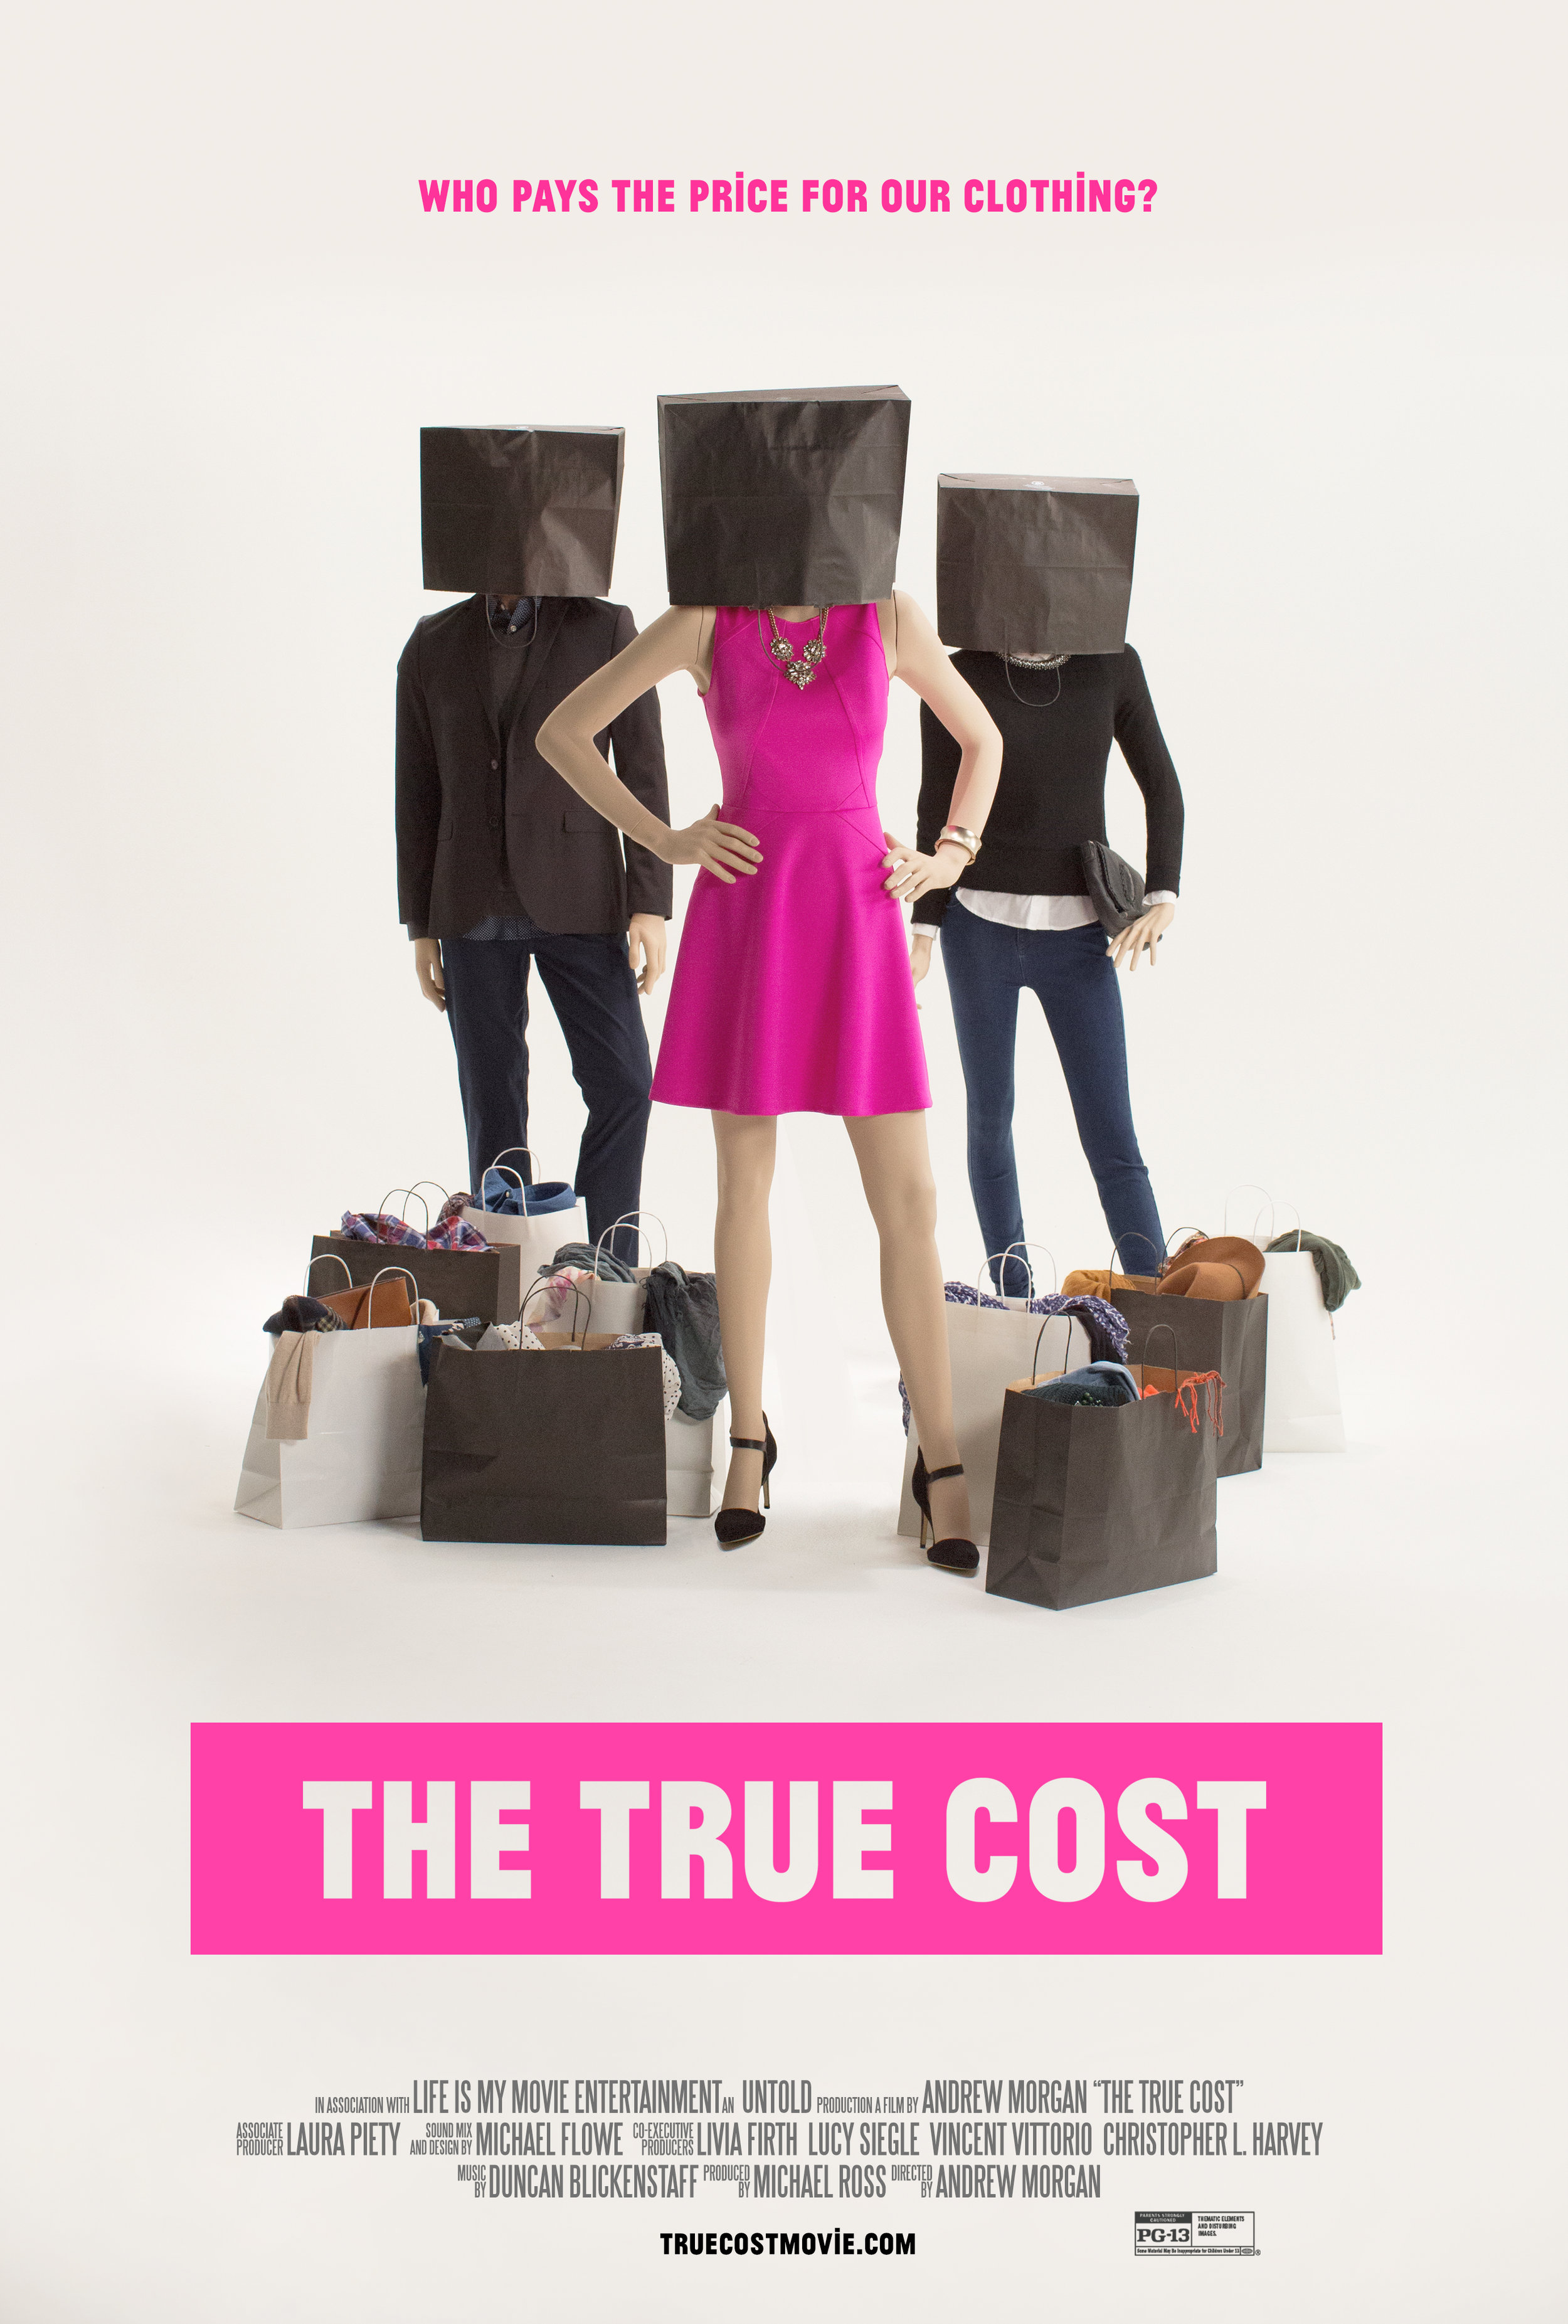 The true cost: Who pays the price of our clothing?